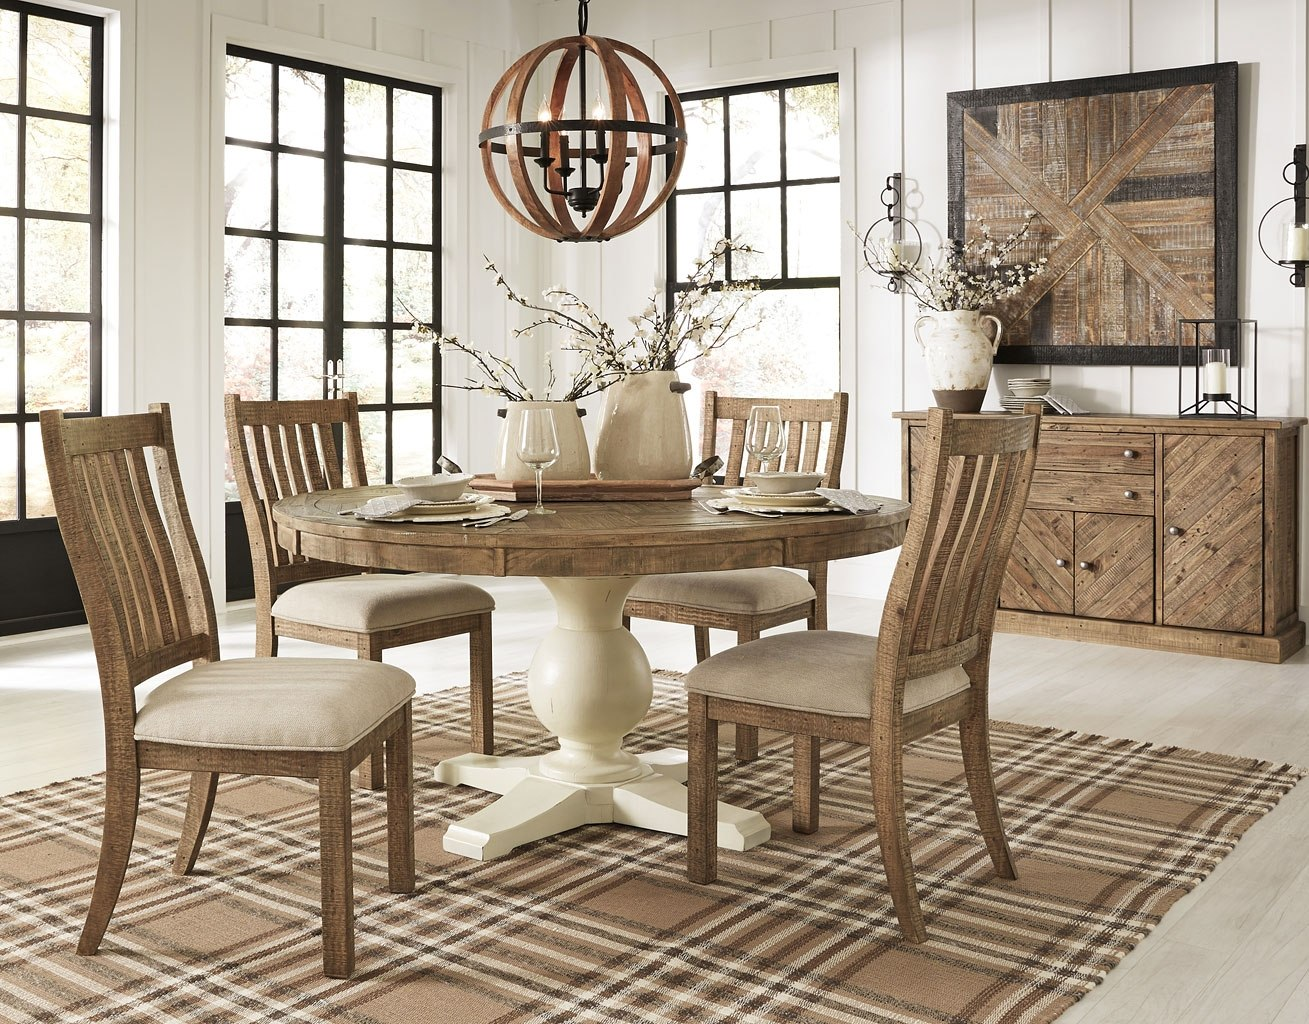 Grindleburg Round Dining Room Set W Light Brown Chairs Signature Design Furniture Cart